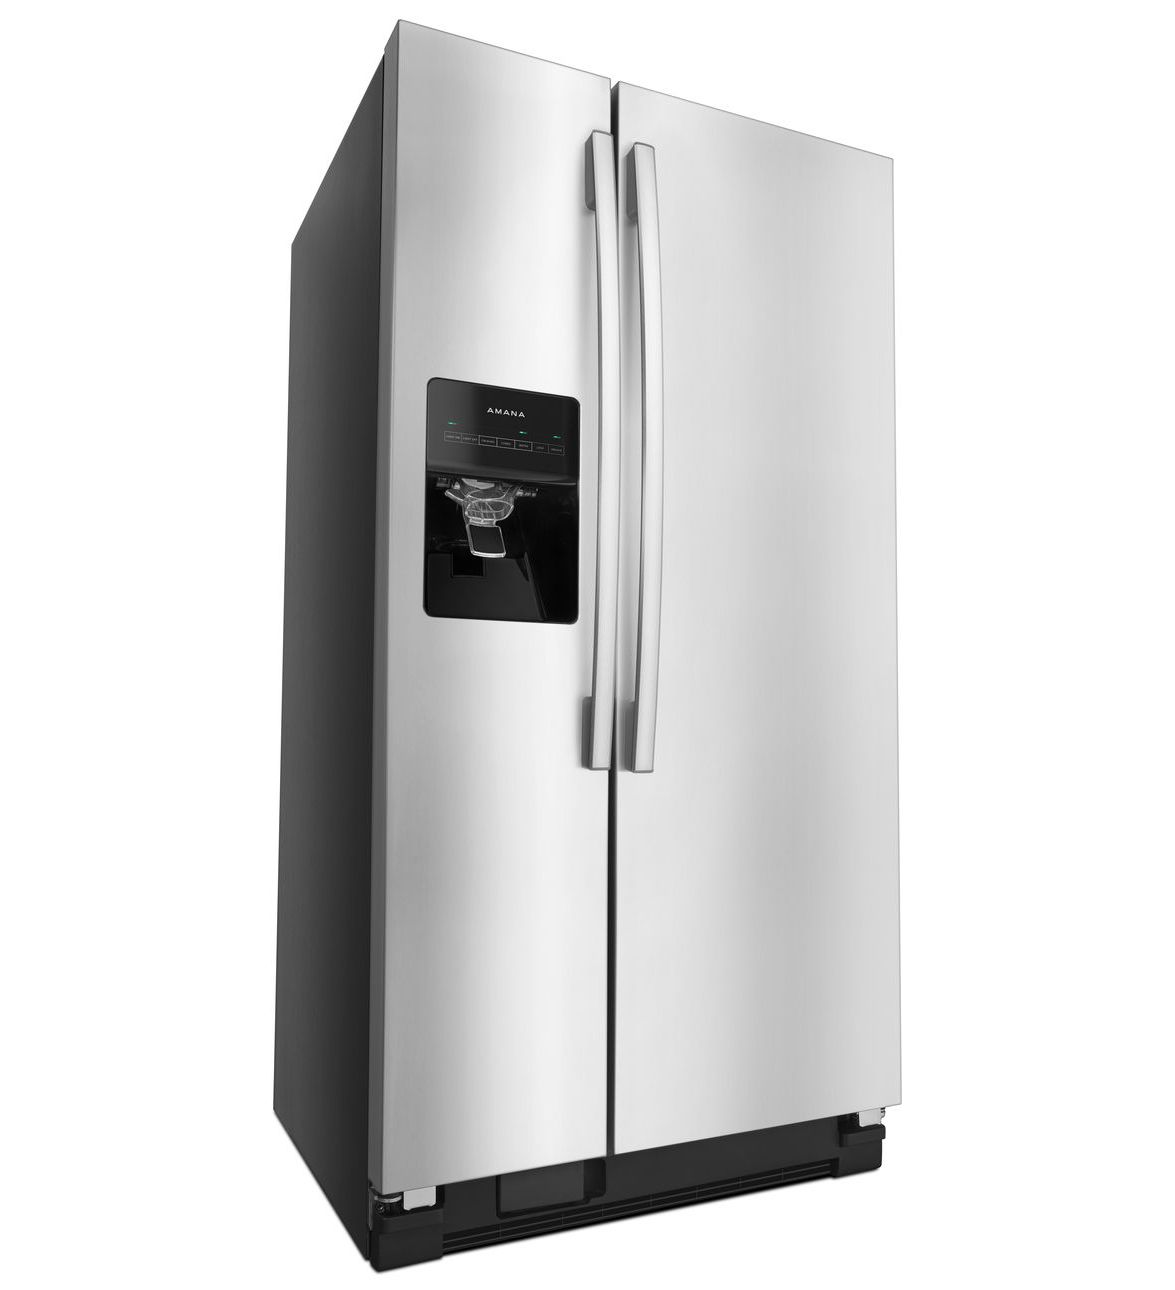 Amana Refrigerators -- Reviews and Ratings of the Best Amana